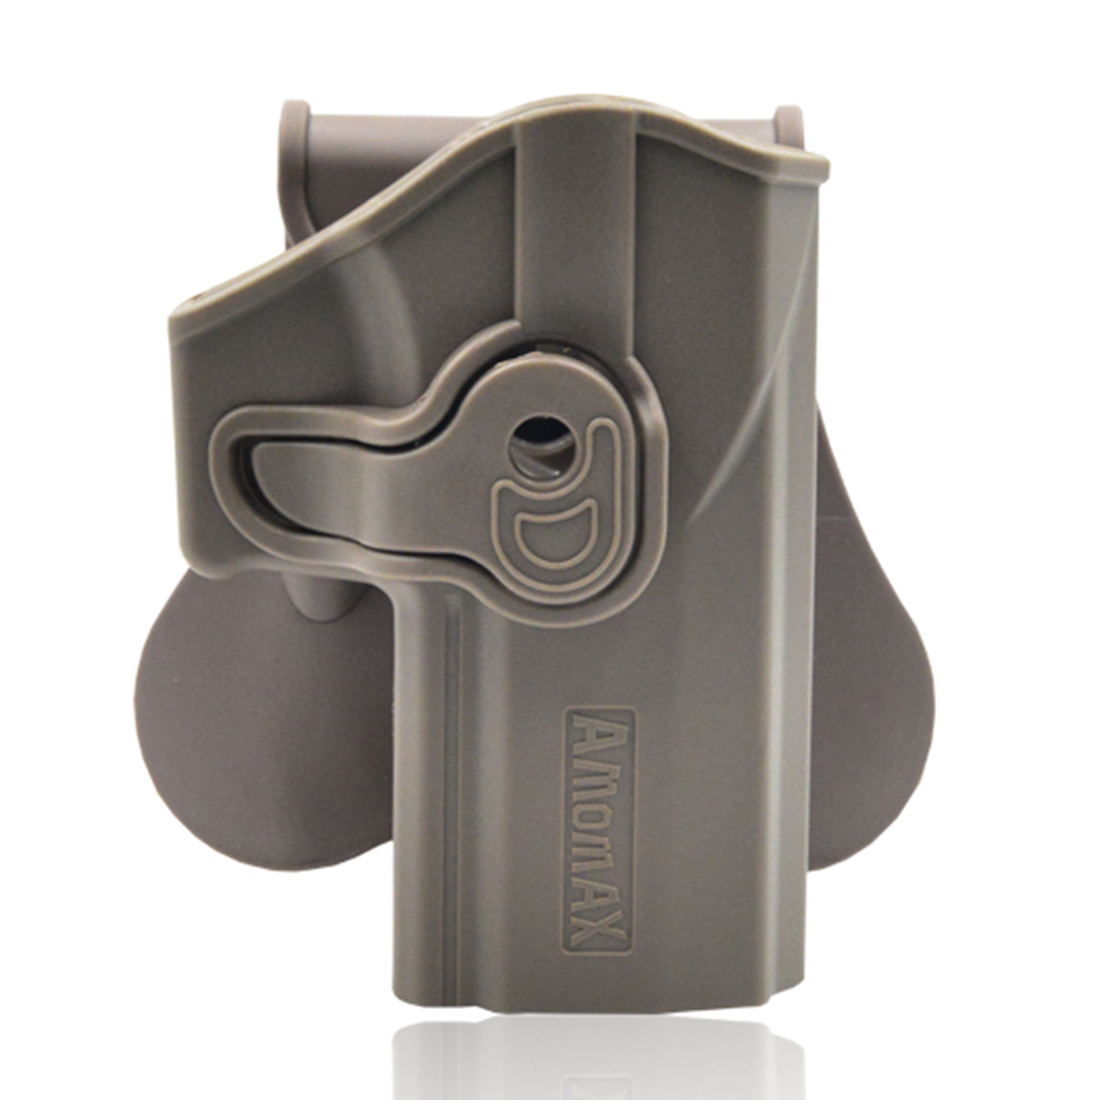 Amomax Adjustable Tactical Holster For Sig Sauer P320 - Right-handed Tan(Standard Only With Waist Plate, No Other Accessories)